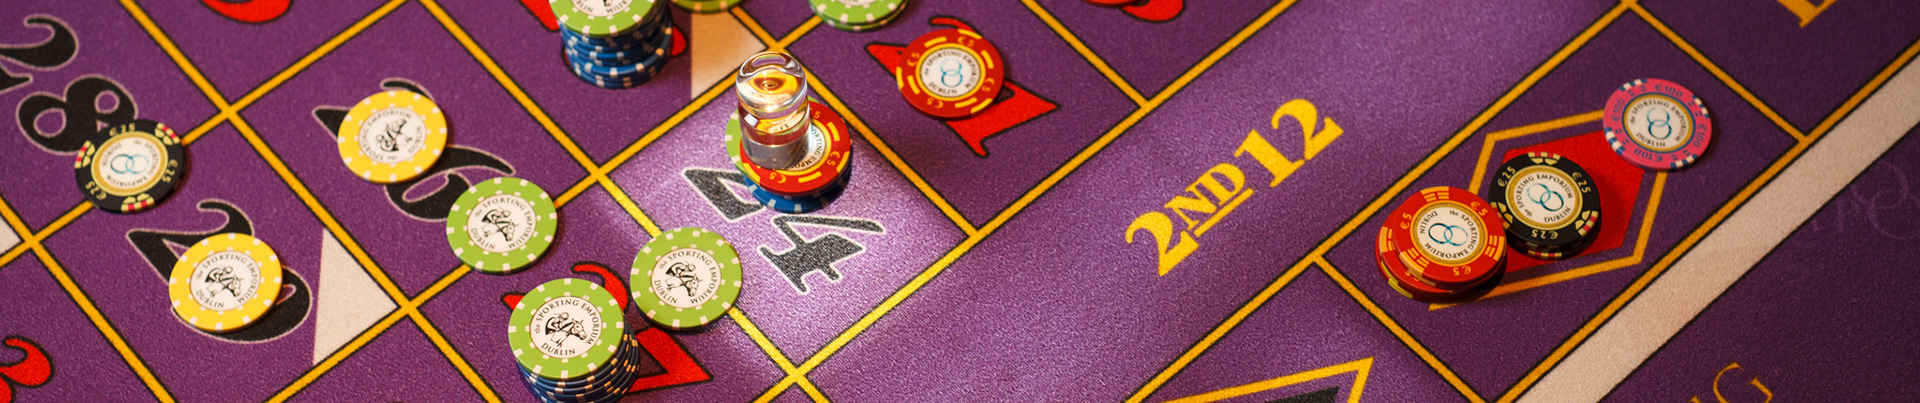 A roulette table with casino tokens